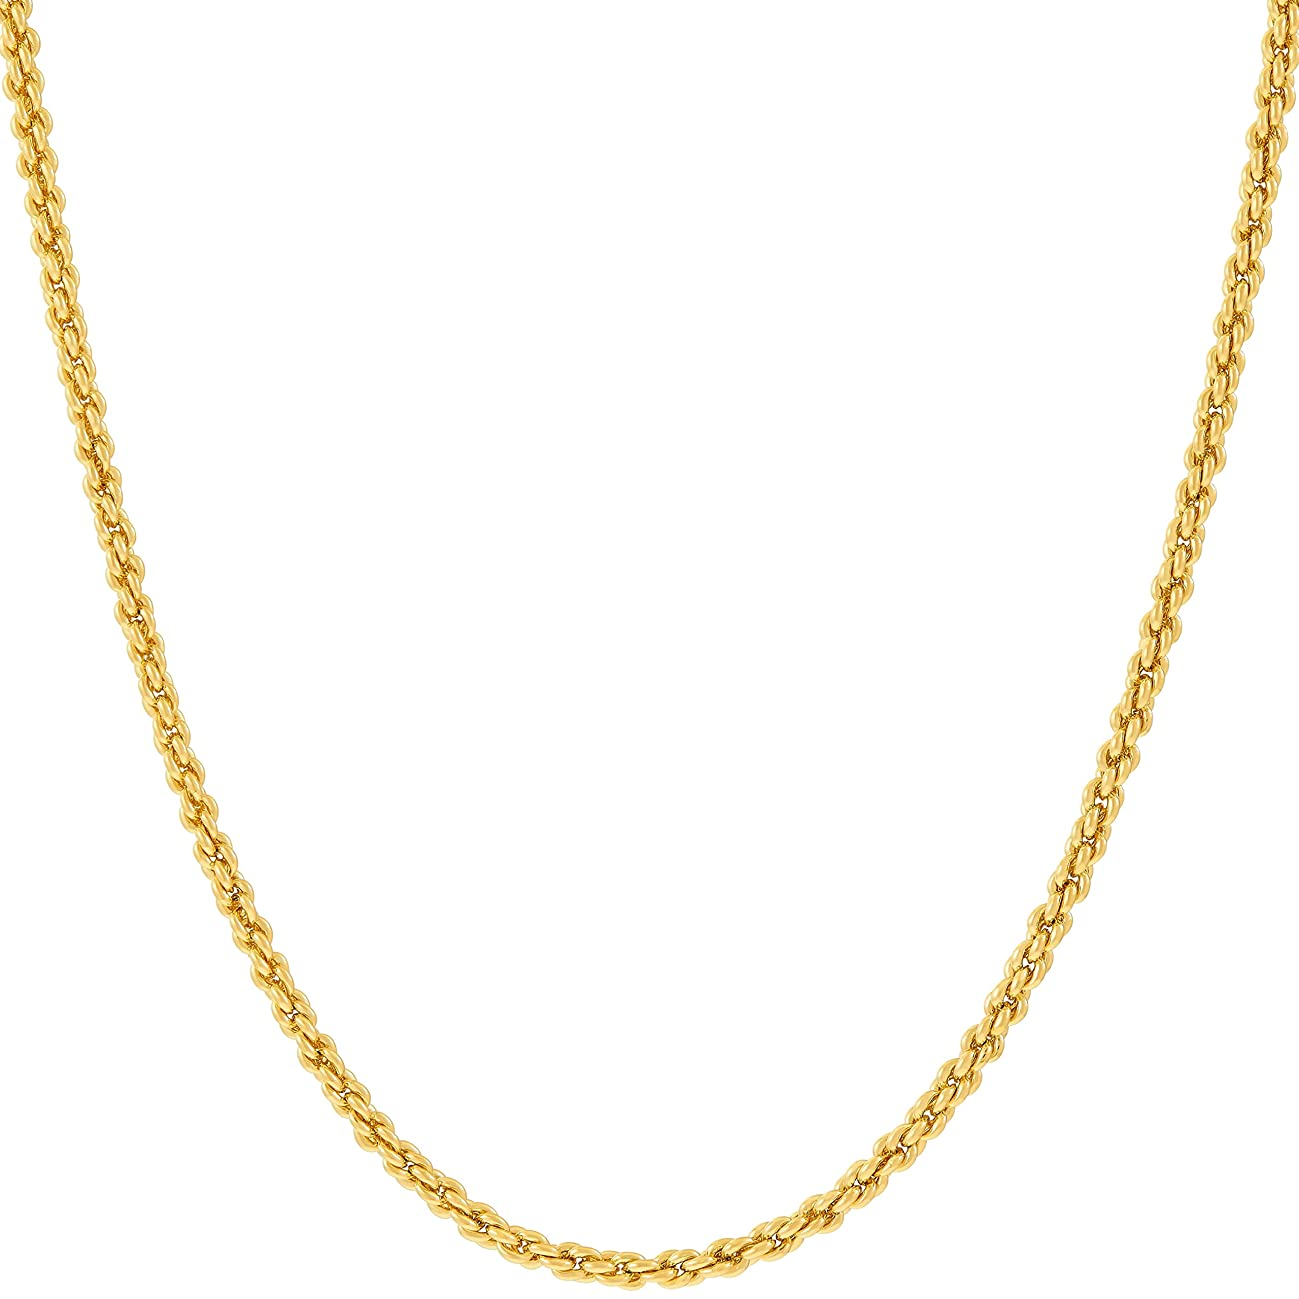 Lifetime Jewelry Gold Chain Necklace Jewelry for Women & Men [ 1mm Rope Chain ] – Up to 20X More 24k Plating Than Other Pendant Necklaces Chains – Yellow or White Gold - 16 to 30 inches